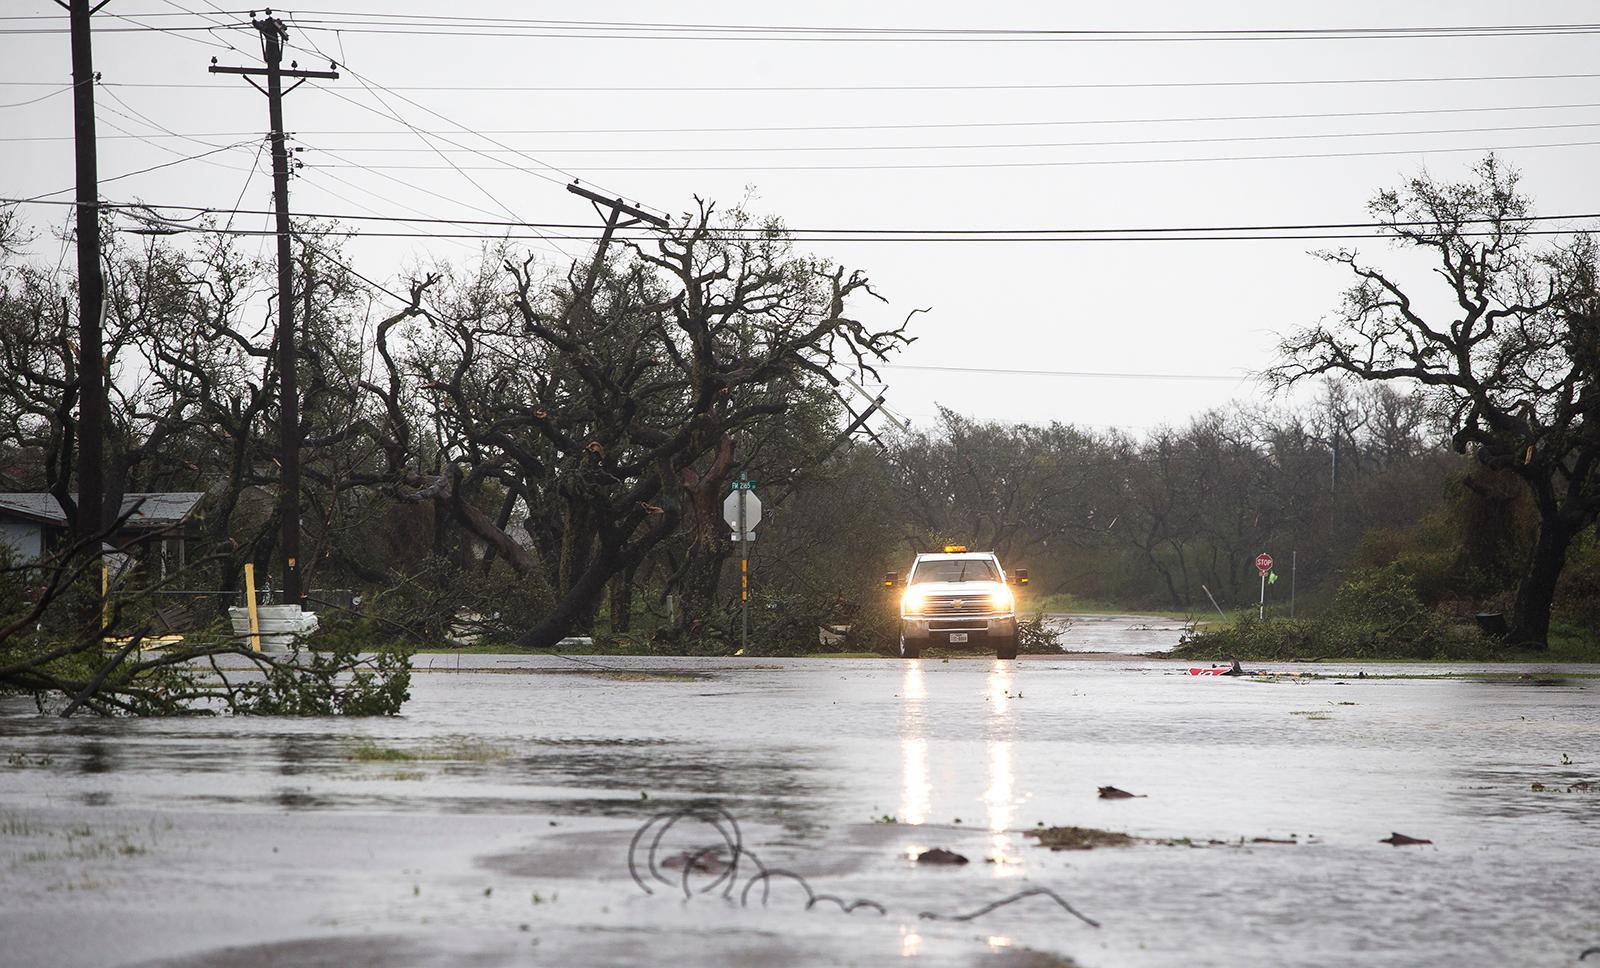 A vehicle drives through flooded roads after Hurricane Harvey ripped through Rockport, Texas, on Saturday, Aug. 26, 2017.  The fiercest hurricane to hit the U.S. in more than a decade spun across hundreds of miles of coastline where communities had prepared for life-threatening storm surges — walls of water rushing inland.  (Nick Wagner/Austin American-Statesman via AP)